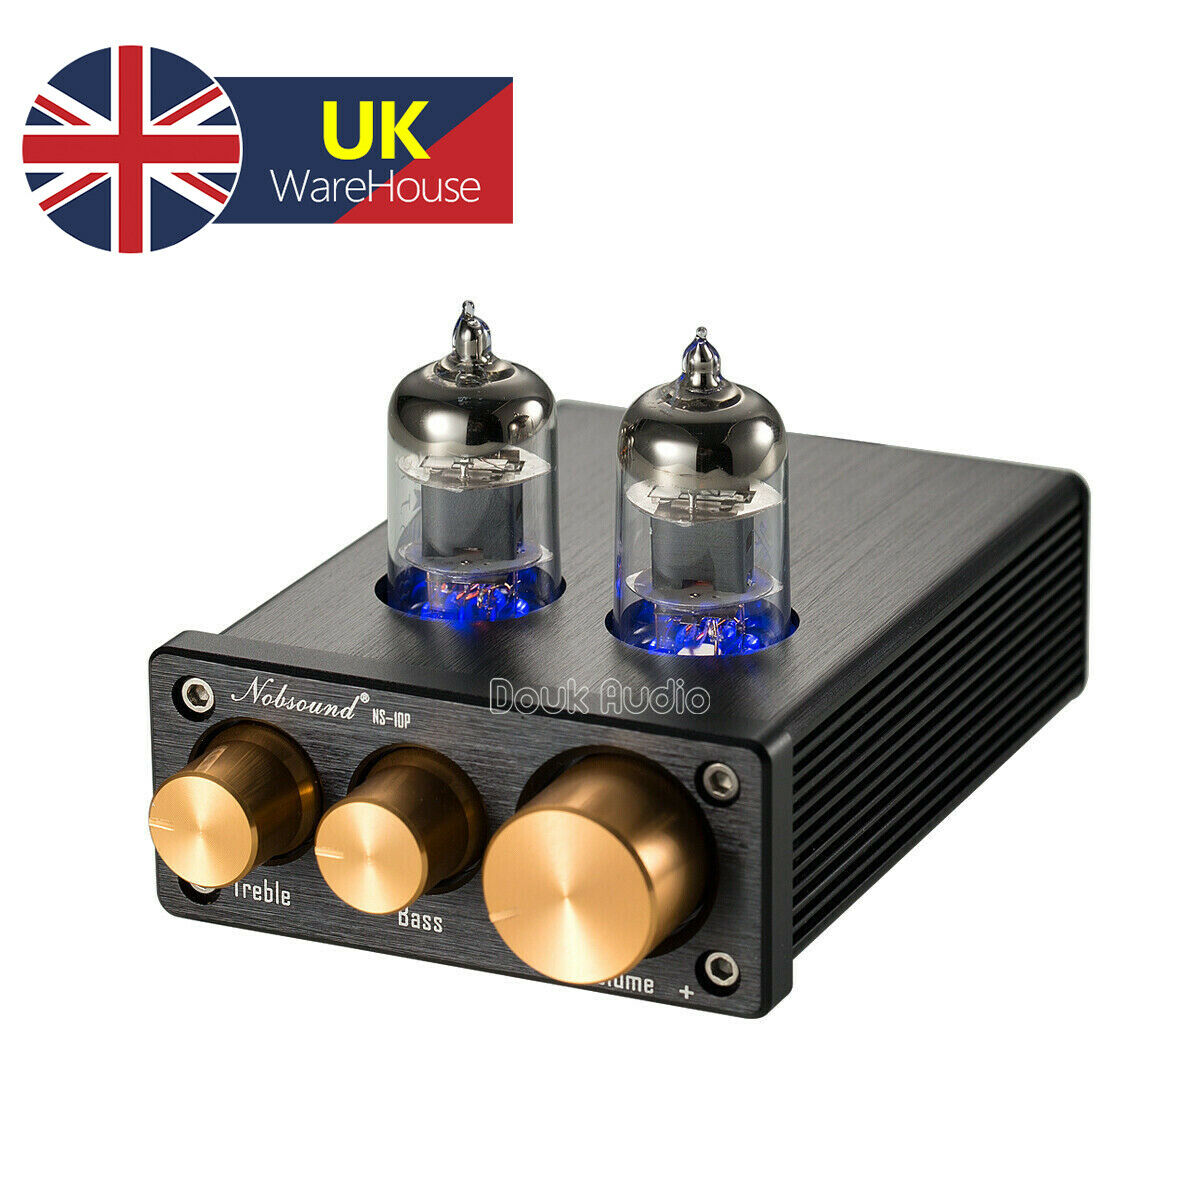 Nobsound Ns 10p Mini 6j1 Tube Preamp Hifi Audio Valve Pre Amplifier 45w Power Include Tone Control 1 Of 12free Shipping See More